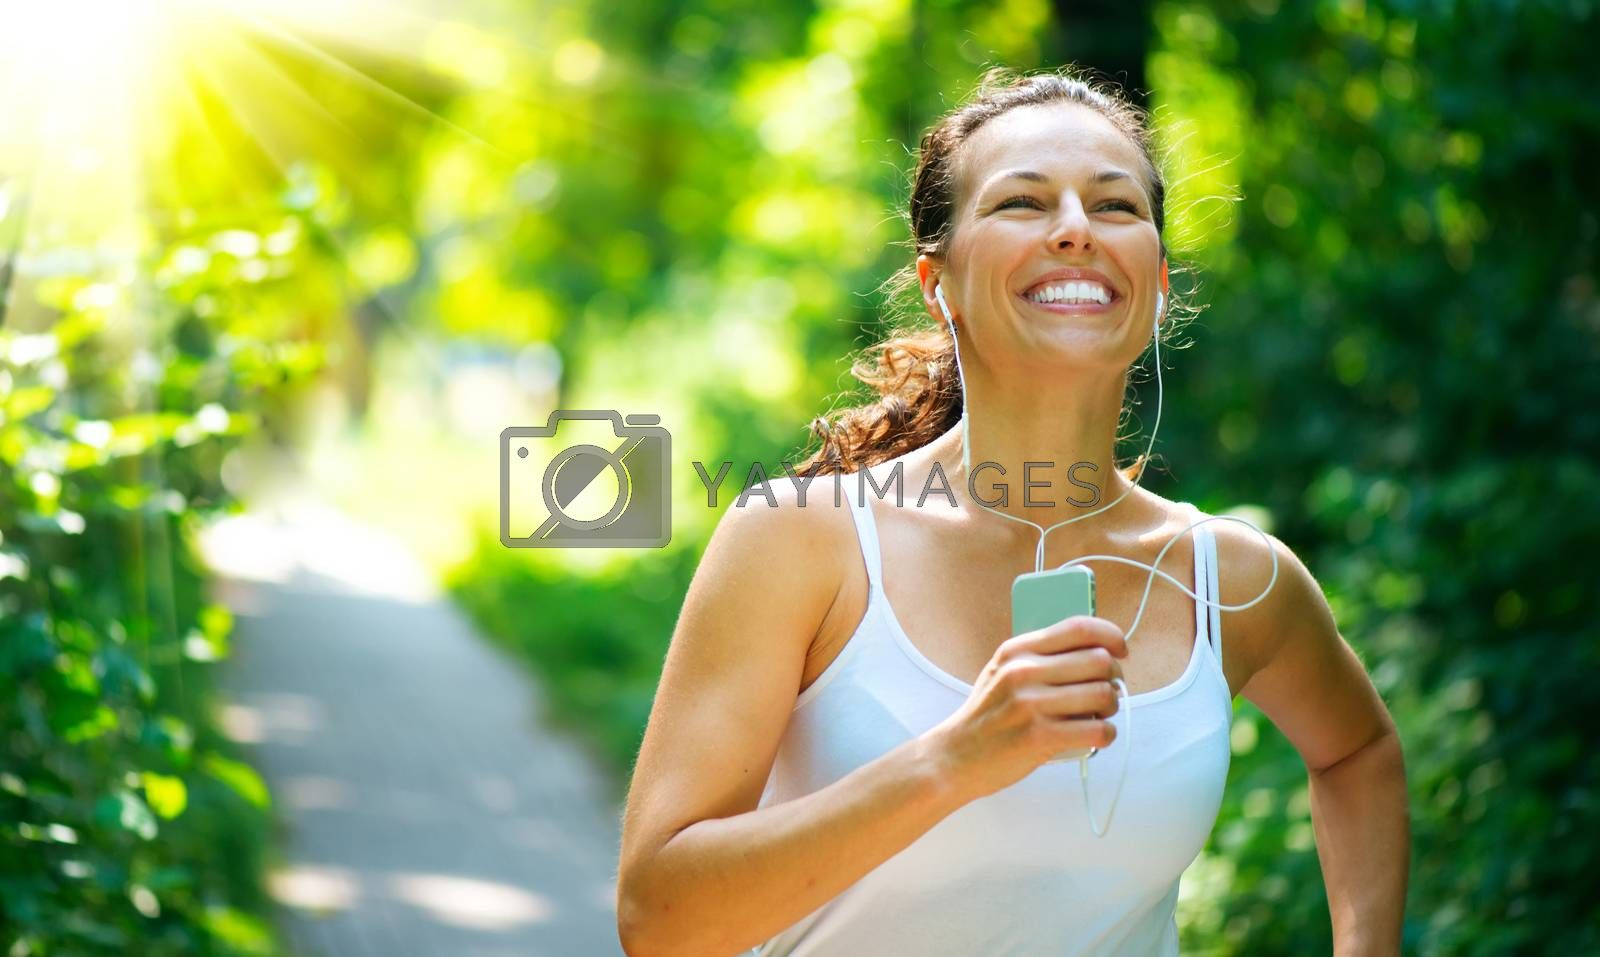 Running woman. Outdoor Workout in a Park by SubbotinaA